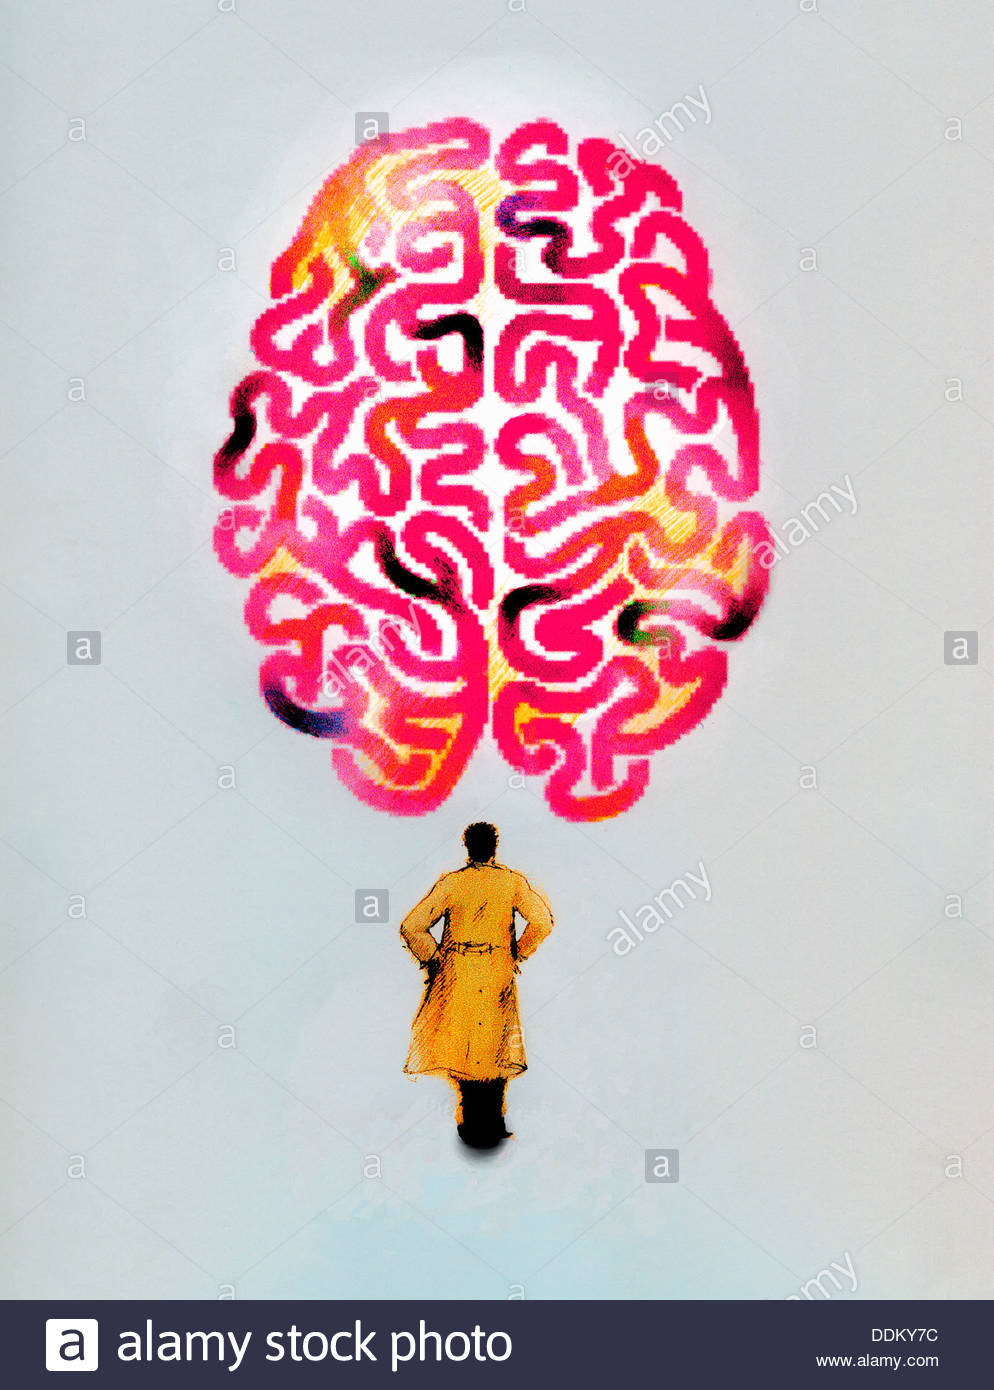 Man in trench coat looking up at large brain - Stock Image